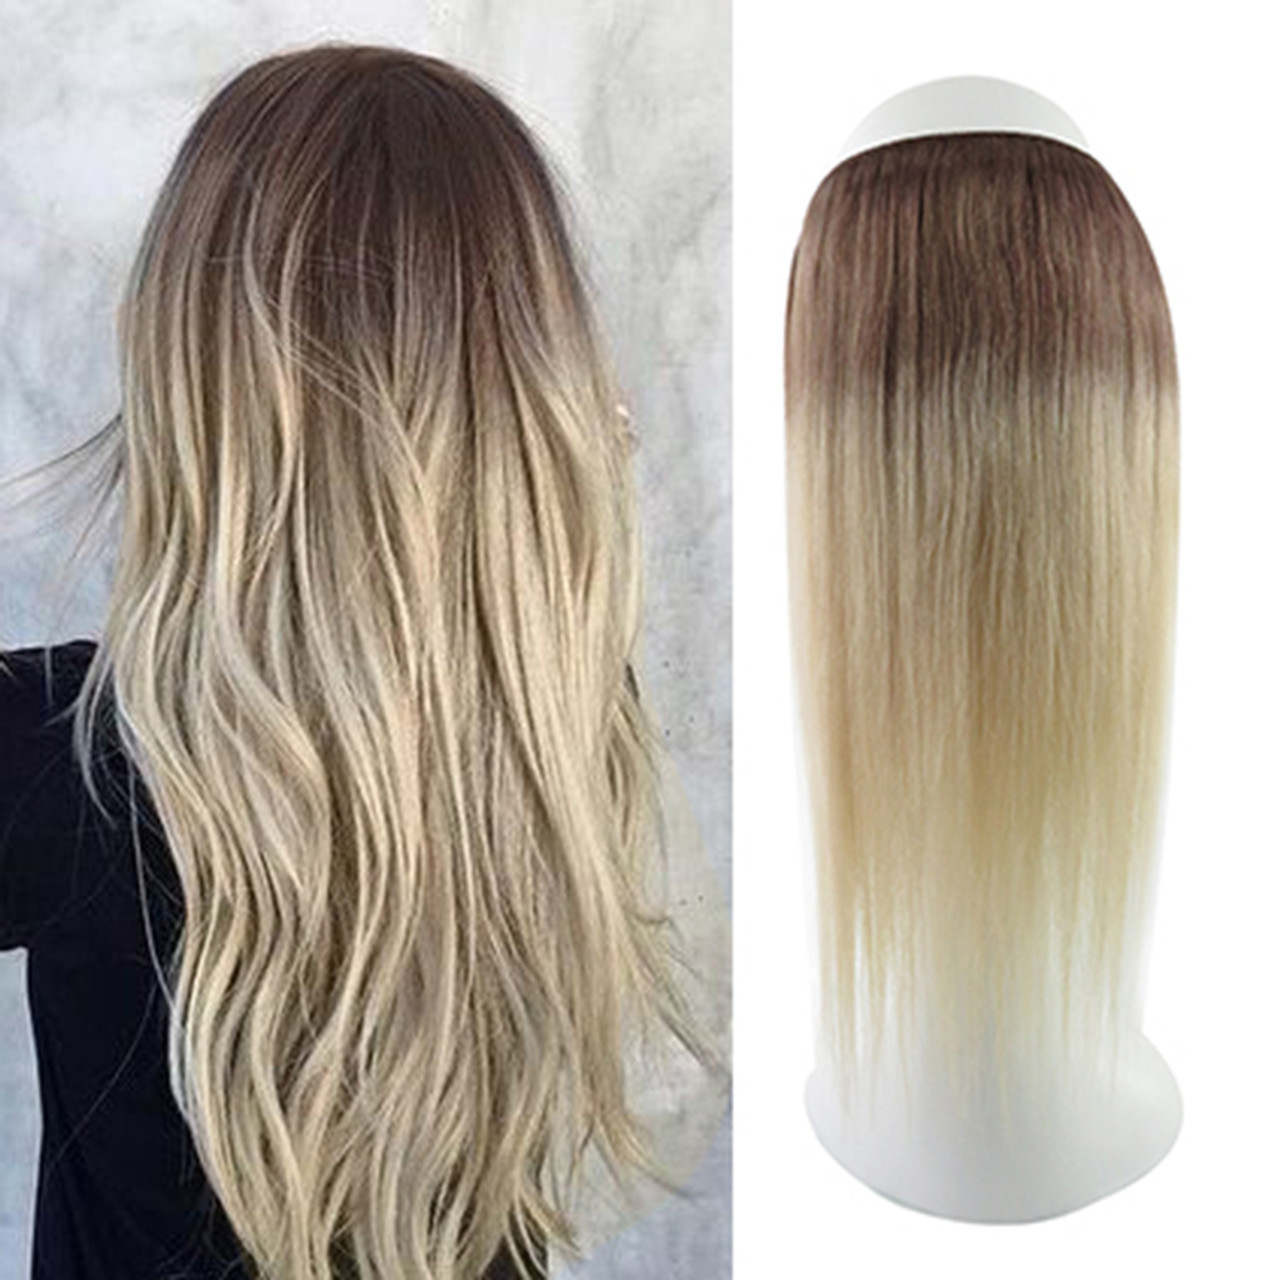 Remeehi Remy Human Hair Halo Secret Invisible